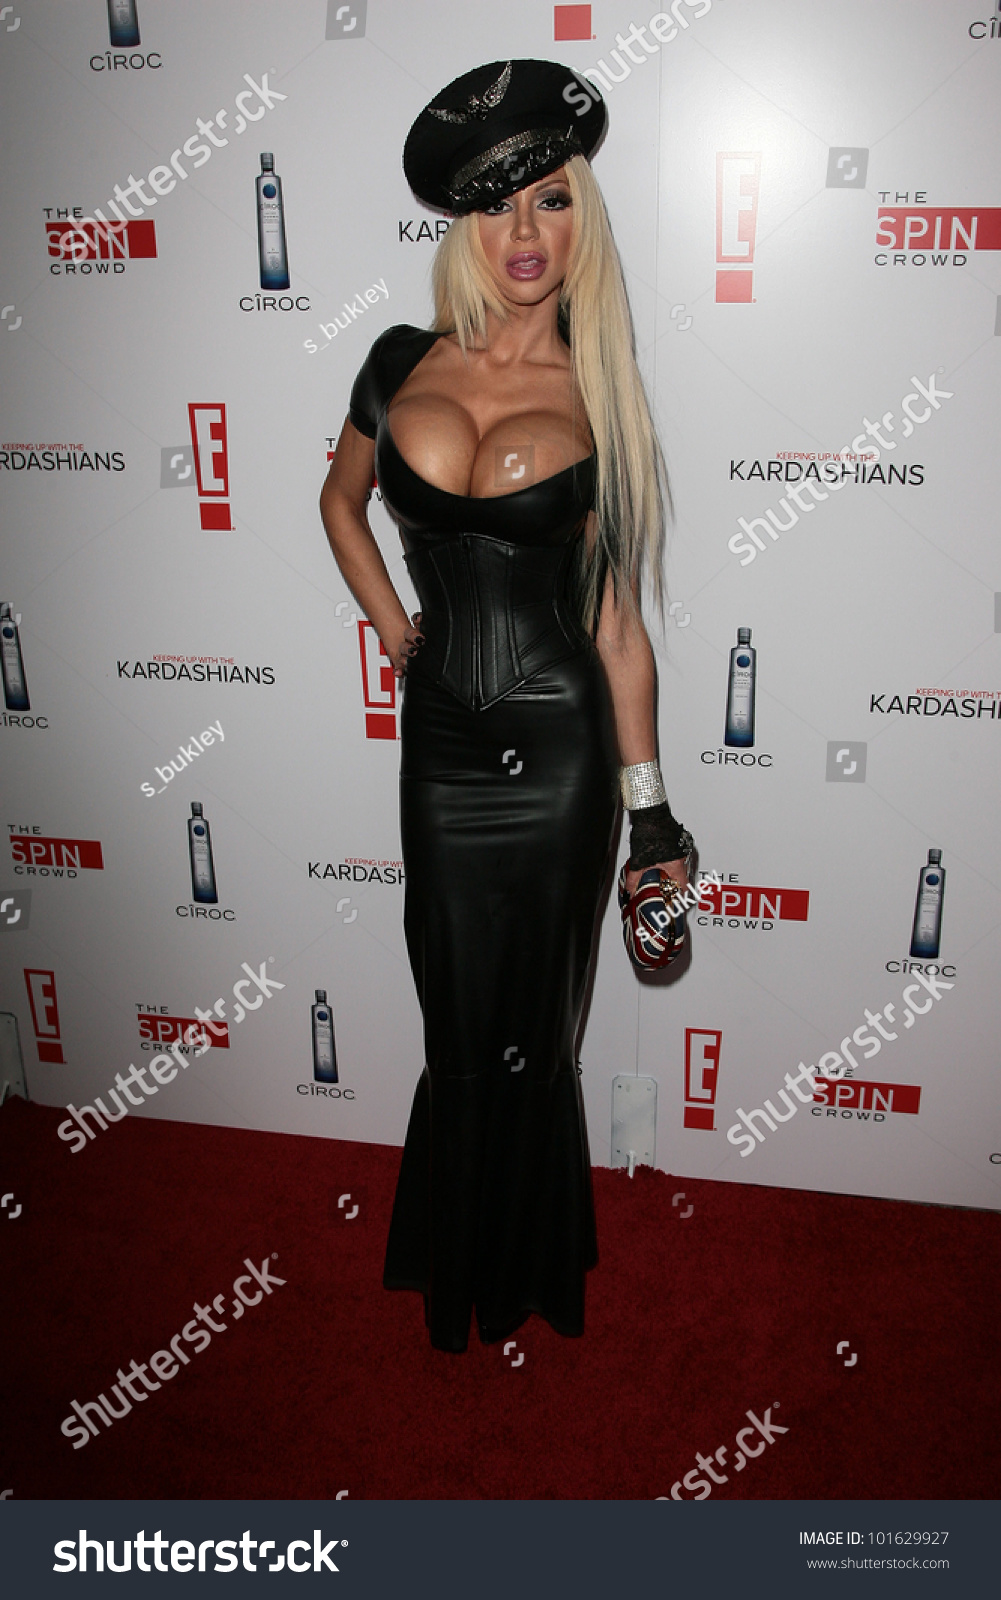 Tías de 25 a 34 años - Página 2 Stock-photo-josie-stevens-at-the-keeping-up-with-the-kardashians-the-spin-crowd-series-party-trousdale-101629927